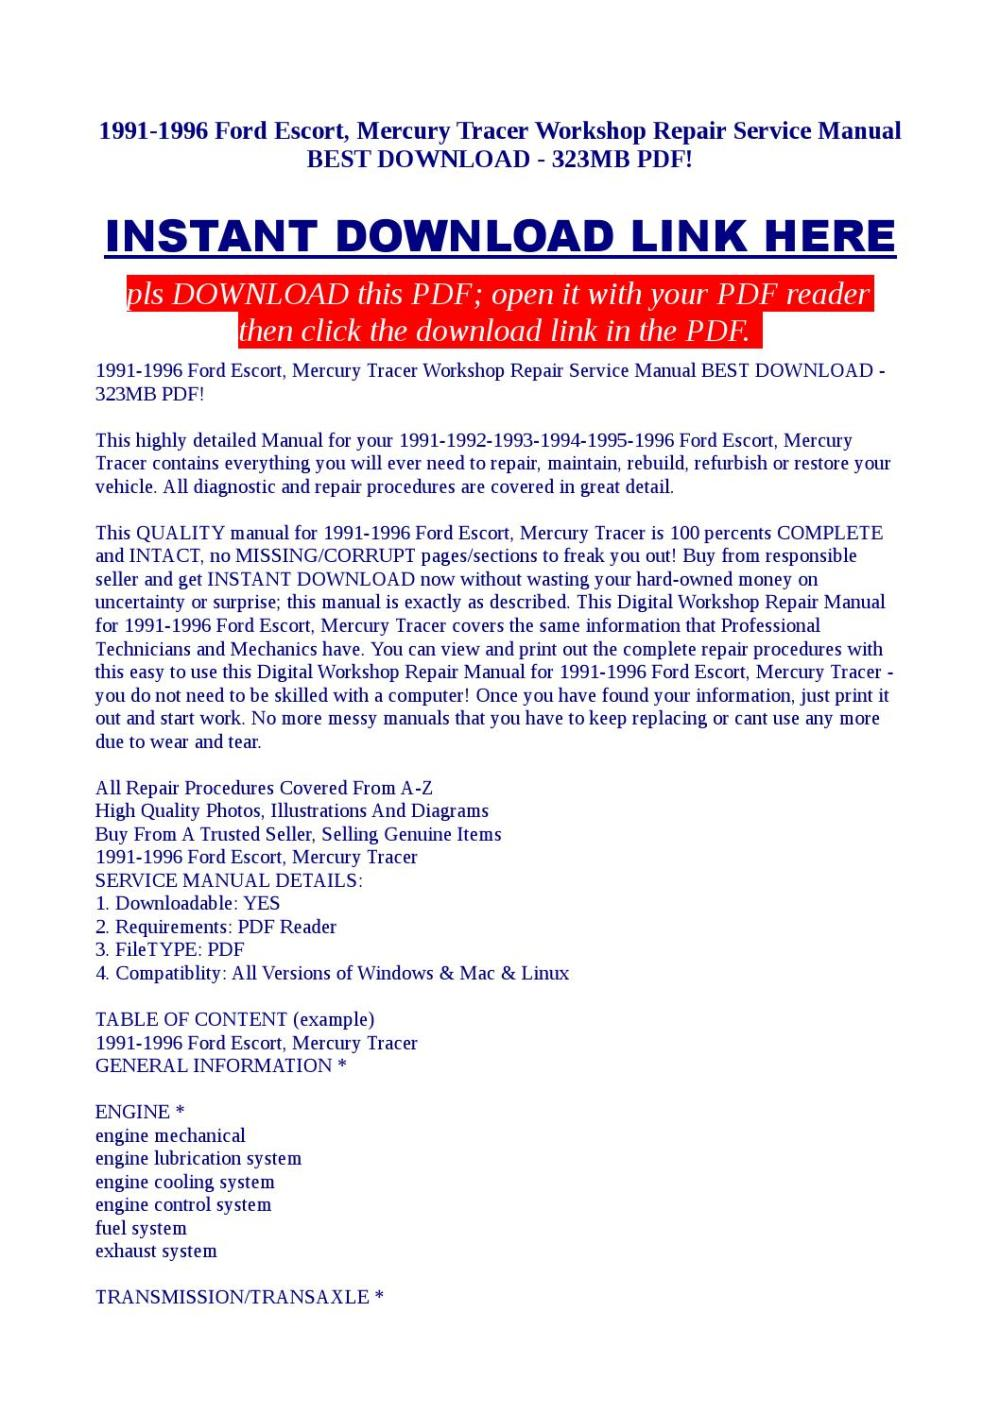 medium resolution of 1991 1996 ford escort mercury tracer workshop repair service manual best download 323mb pdf by kato syomo issuu